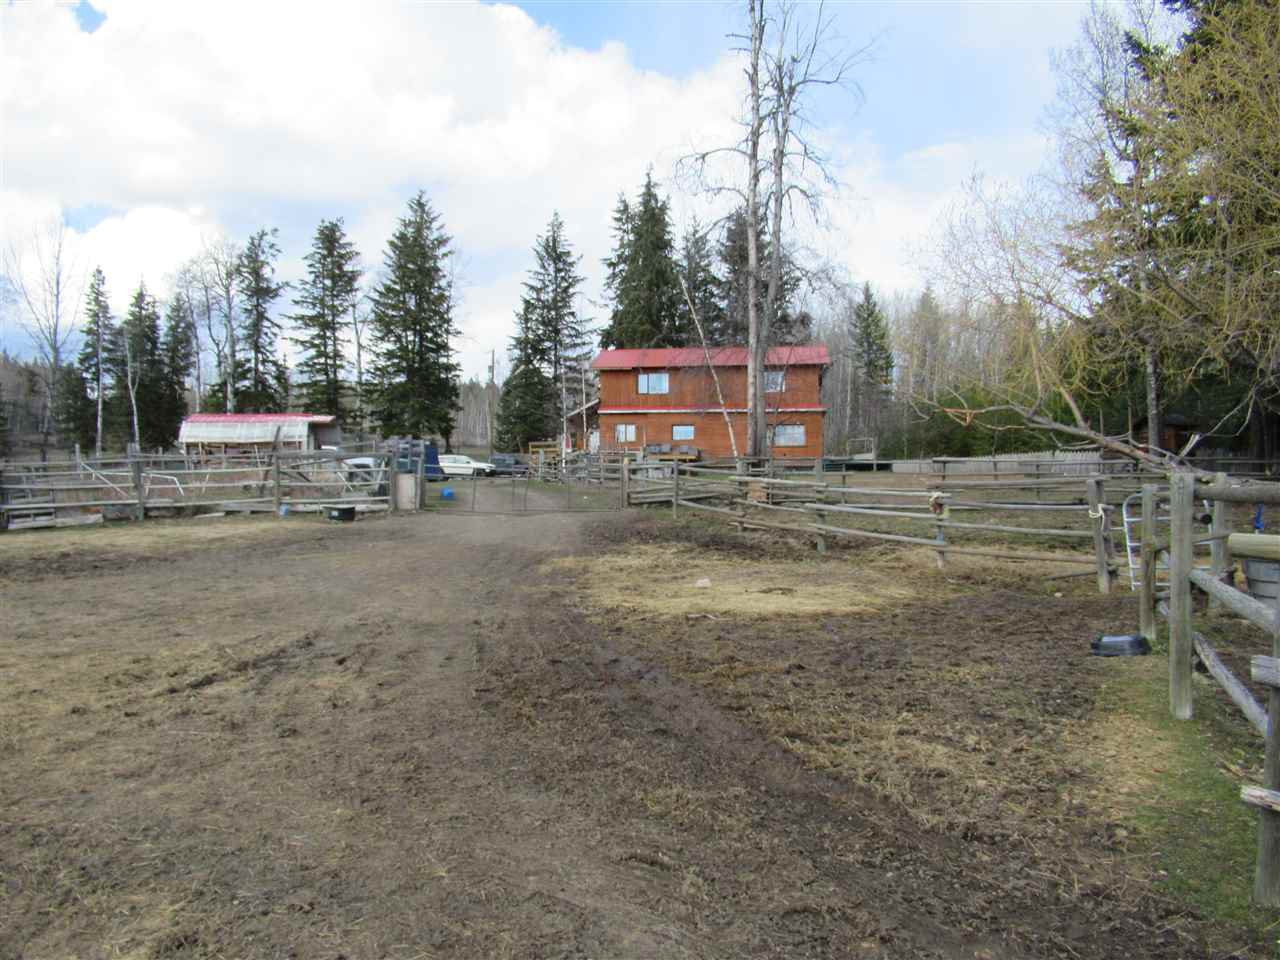 Photo 18: Photos: 3750 PARADISE Drive in Williams Lake: Williams Lake - Rural East House for sale (Williams Lake (Zone 27))  : MLS®# R2350243